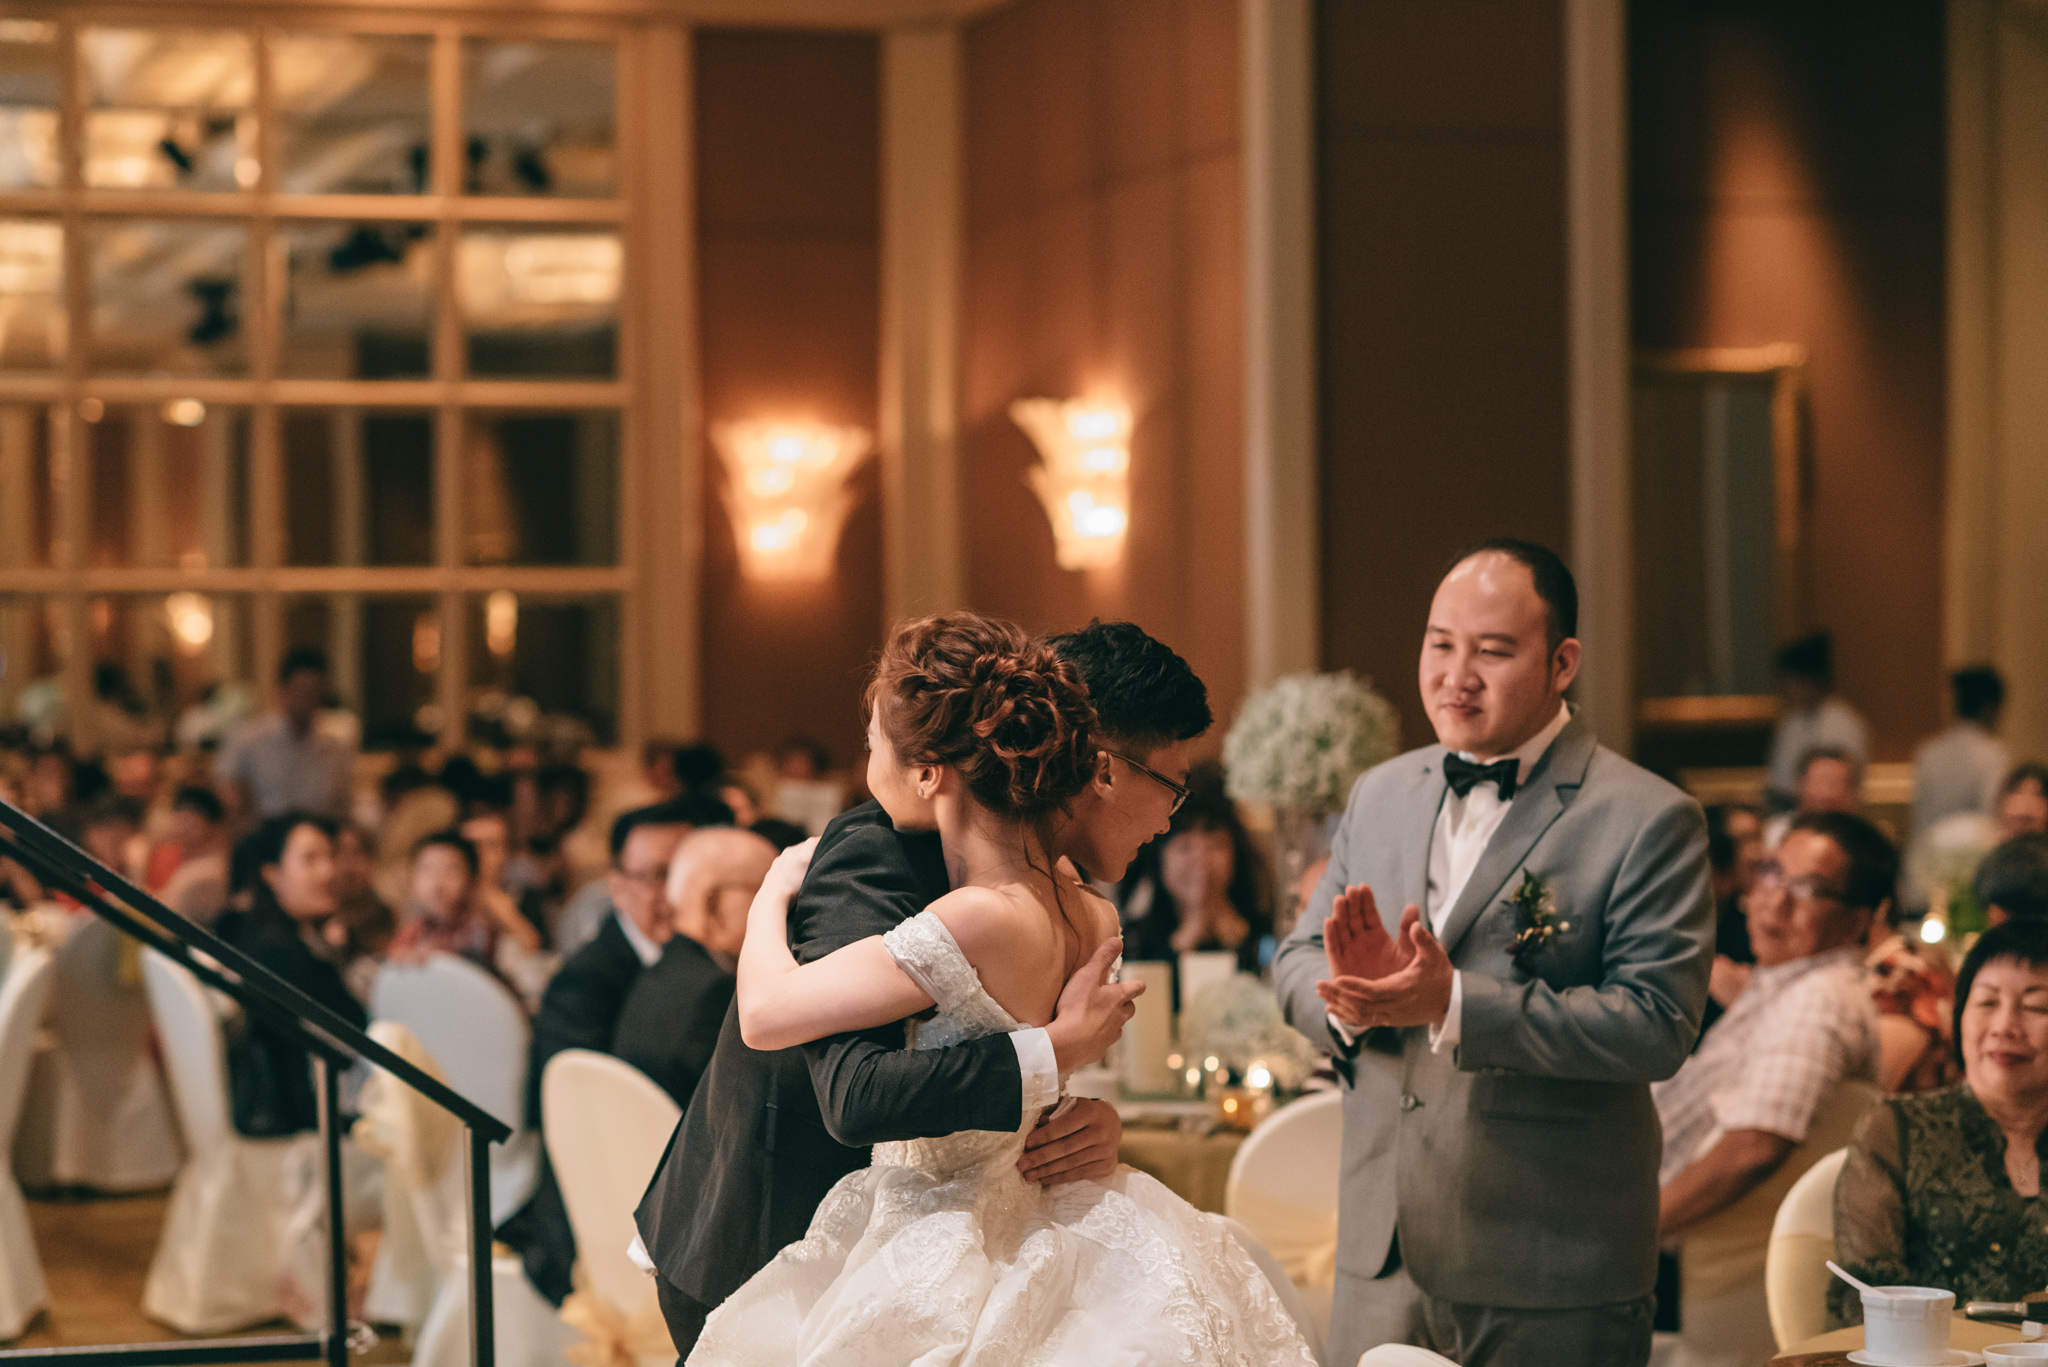 Eunice & Winshire Wedding Day Highlights (resized for sharing) - 193.jpg